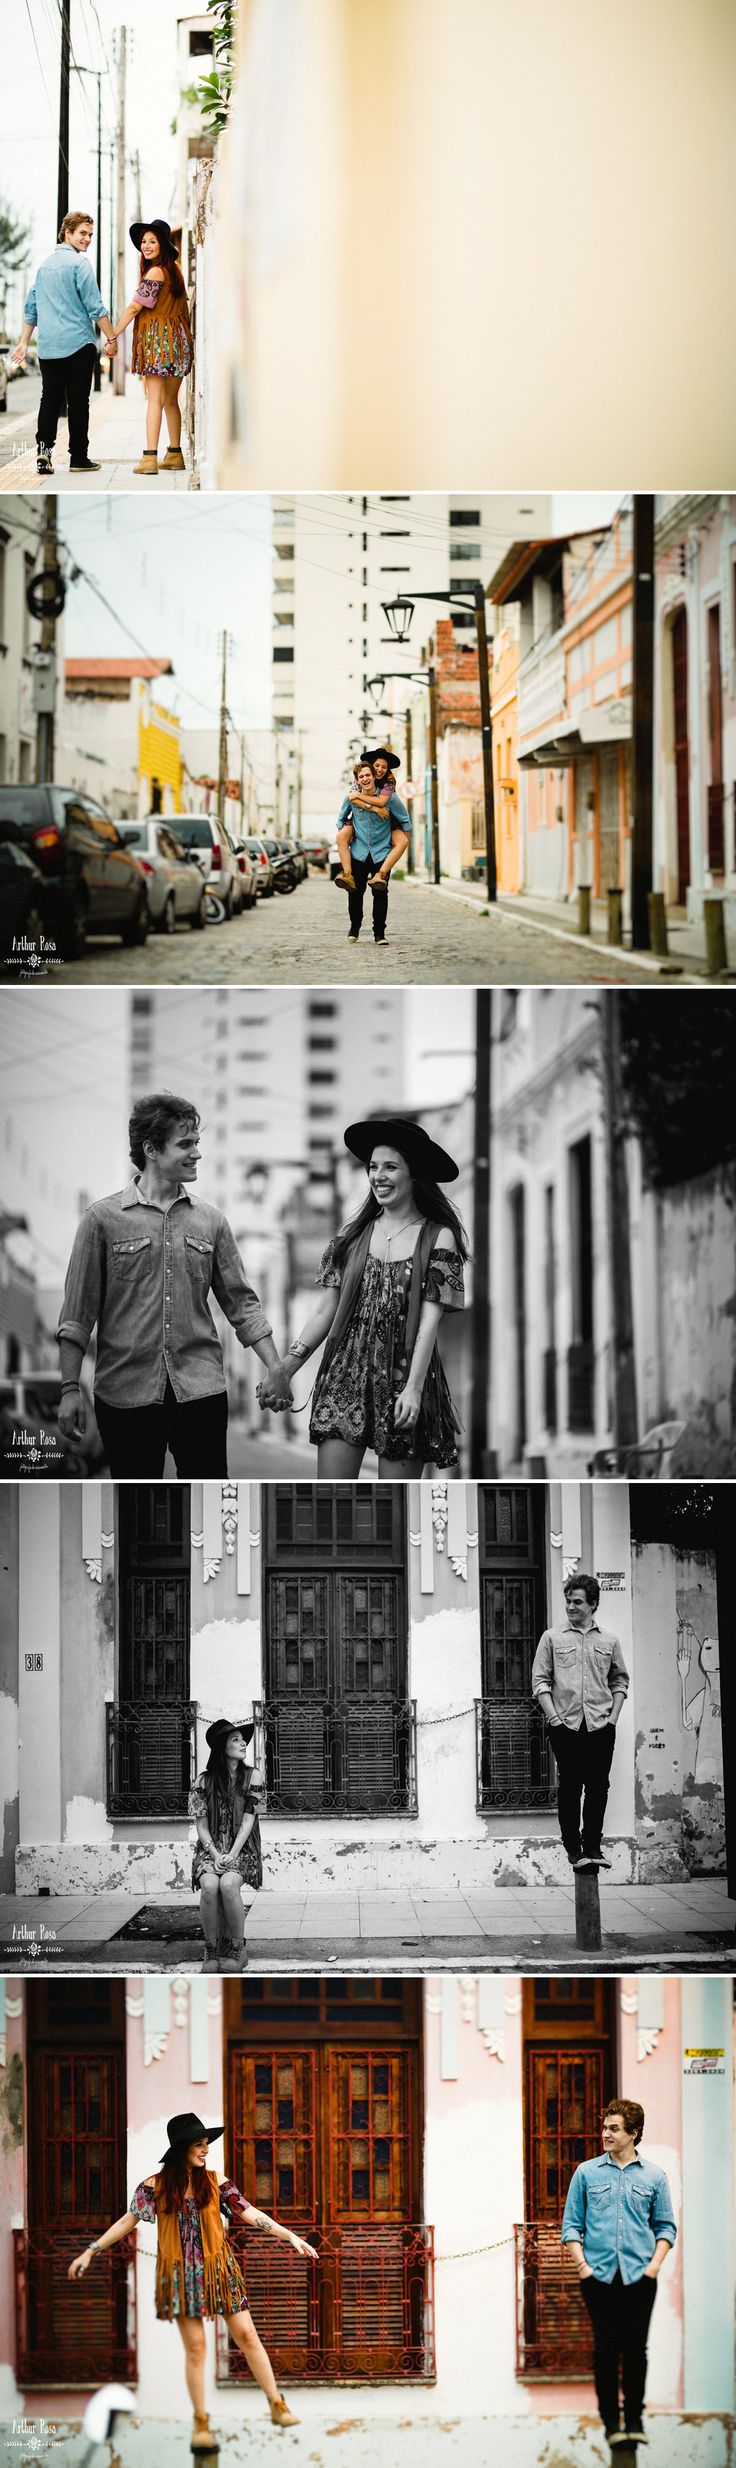 Romantic engagement session pictures. Urban session. Fortaleza city. - Tap the link to shop on our official online store! You can also join our affiliate and/or rewards programs for FREE!